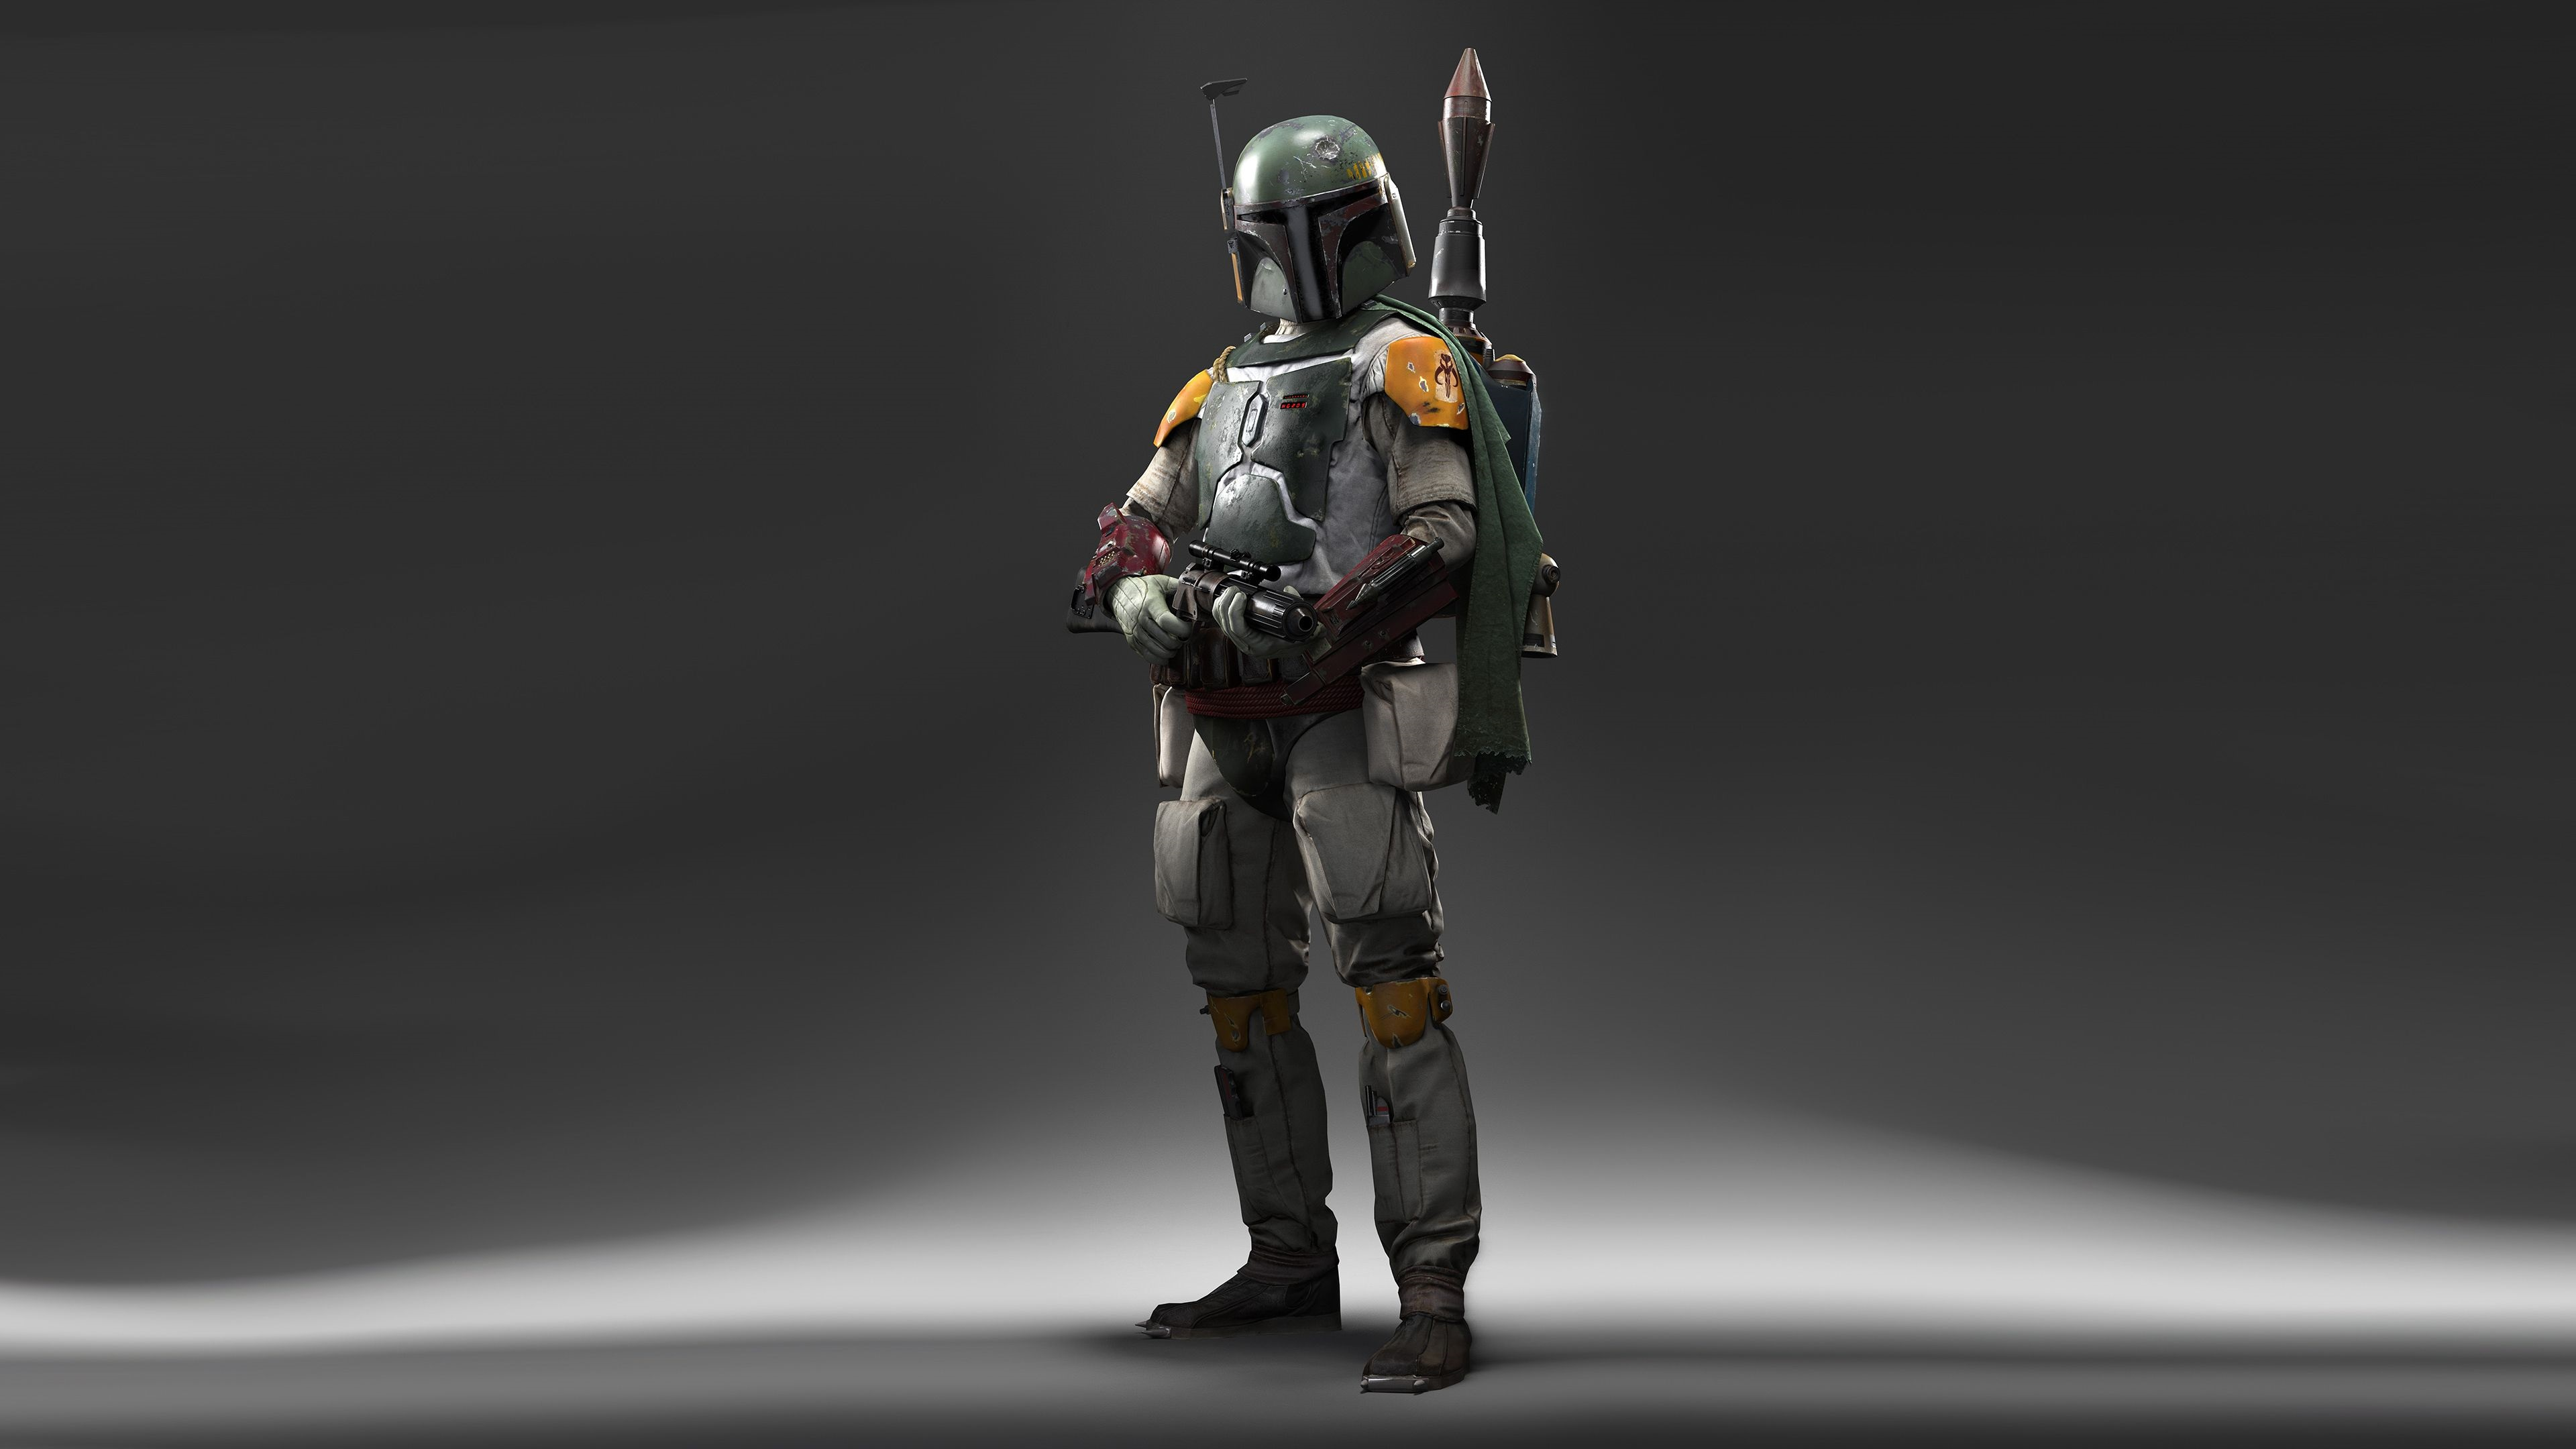 2560x1440 Boba Fett Star Wars 1440p Resolution Wallpaper Hd Movies 4k Wallpapers Images Photos And Background